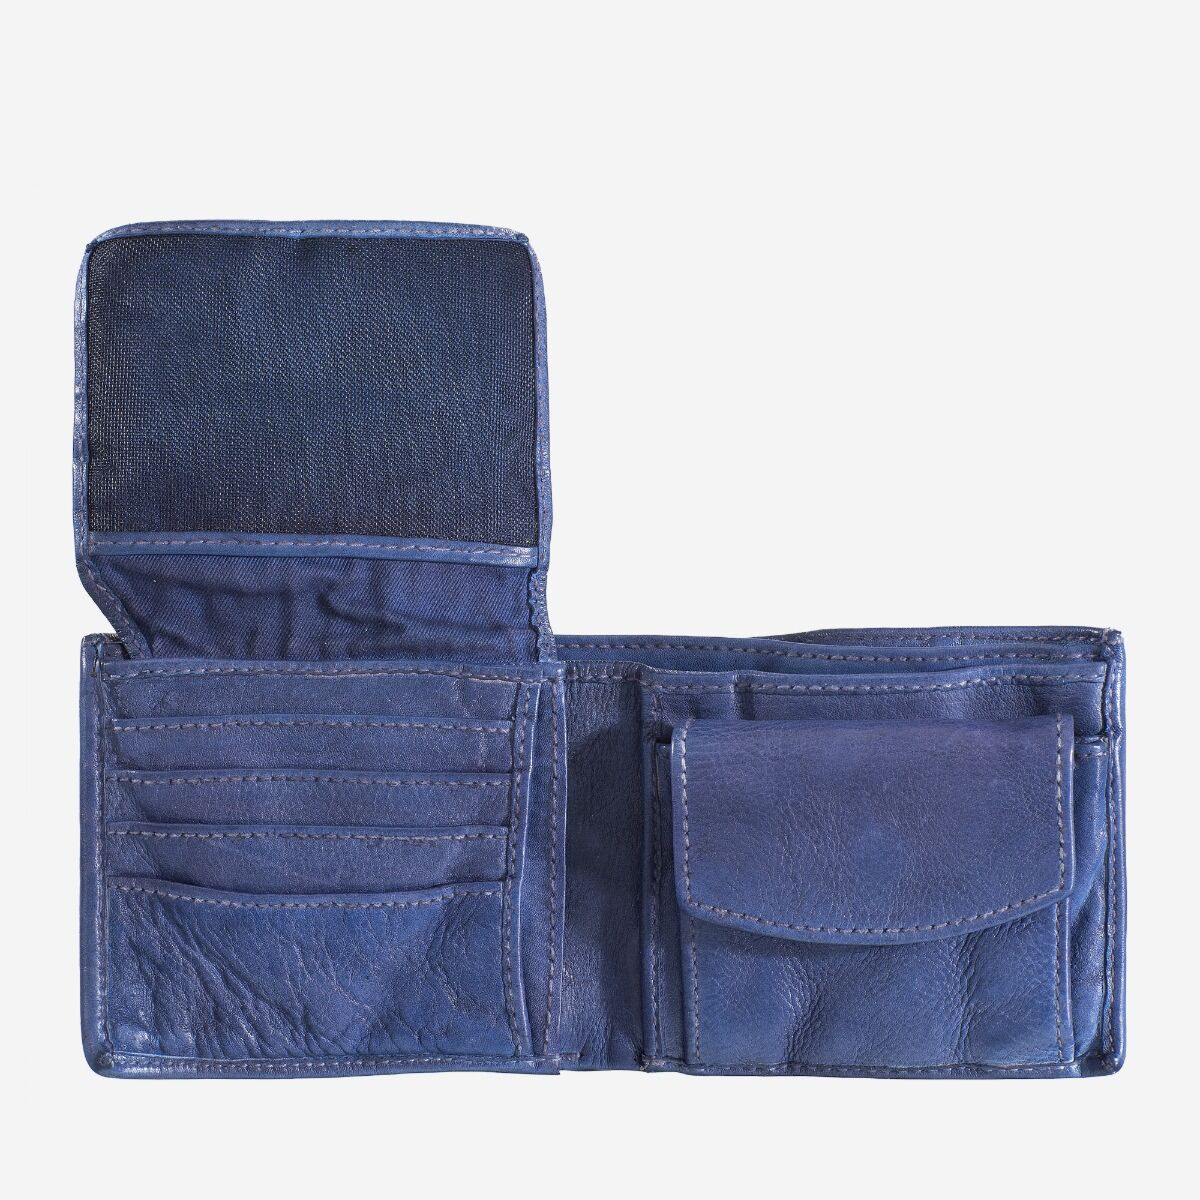 DuDu Mans hand-made soft natural high quality leather wallet - Indigo Blue